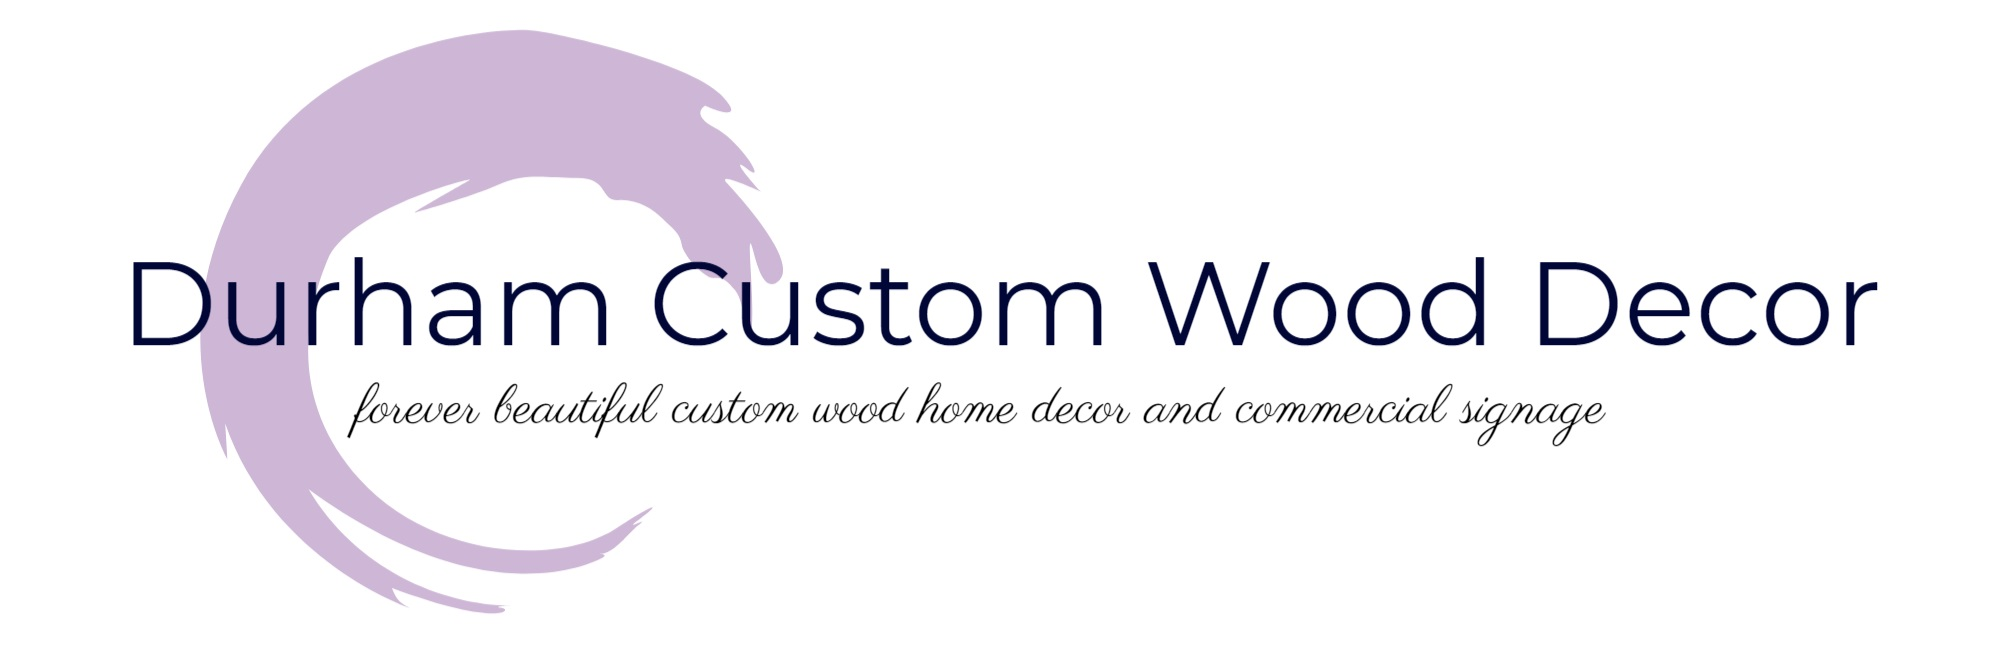 Durham Custom Wood Decor